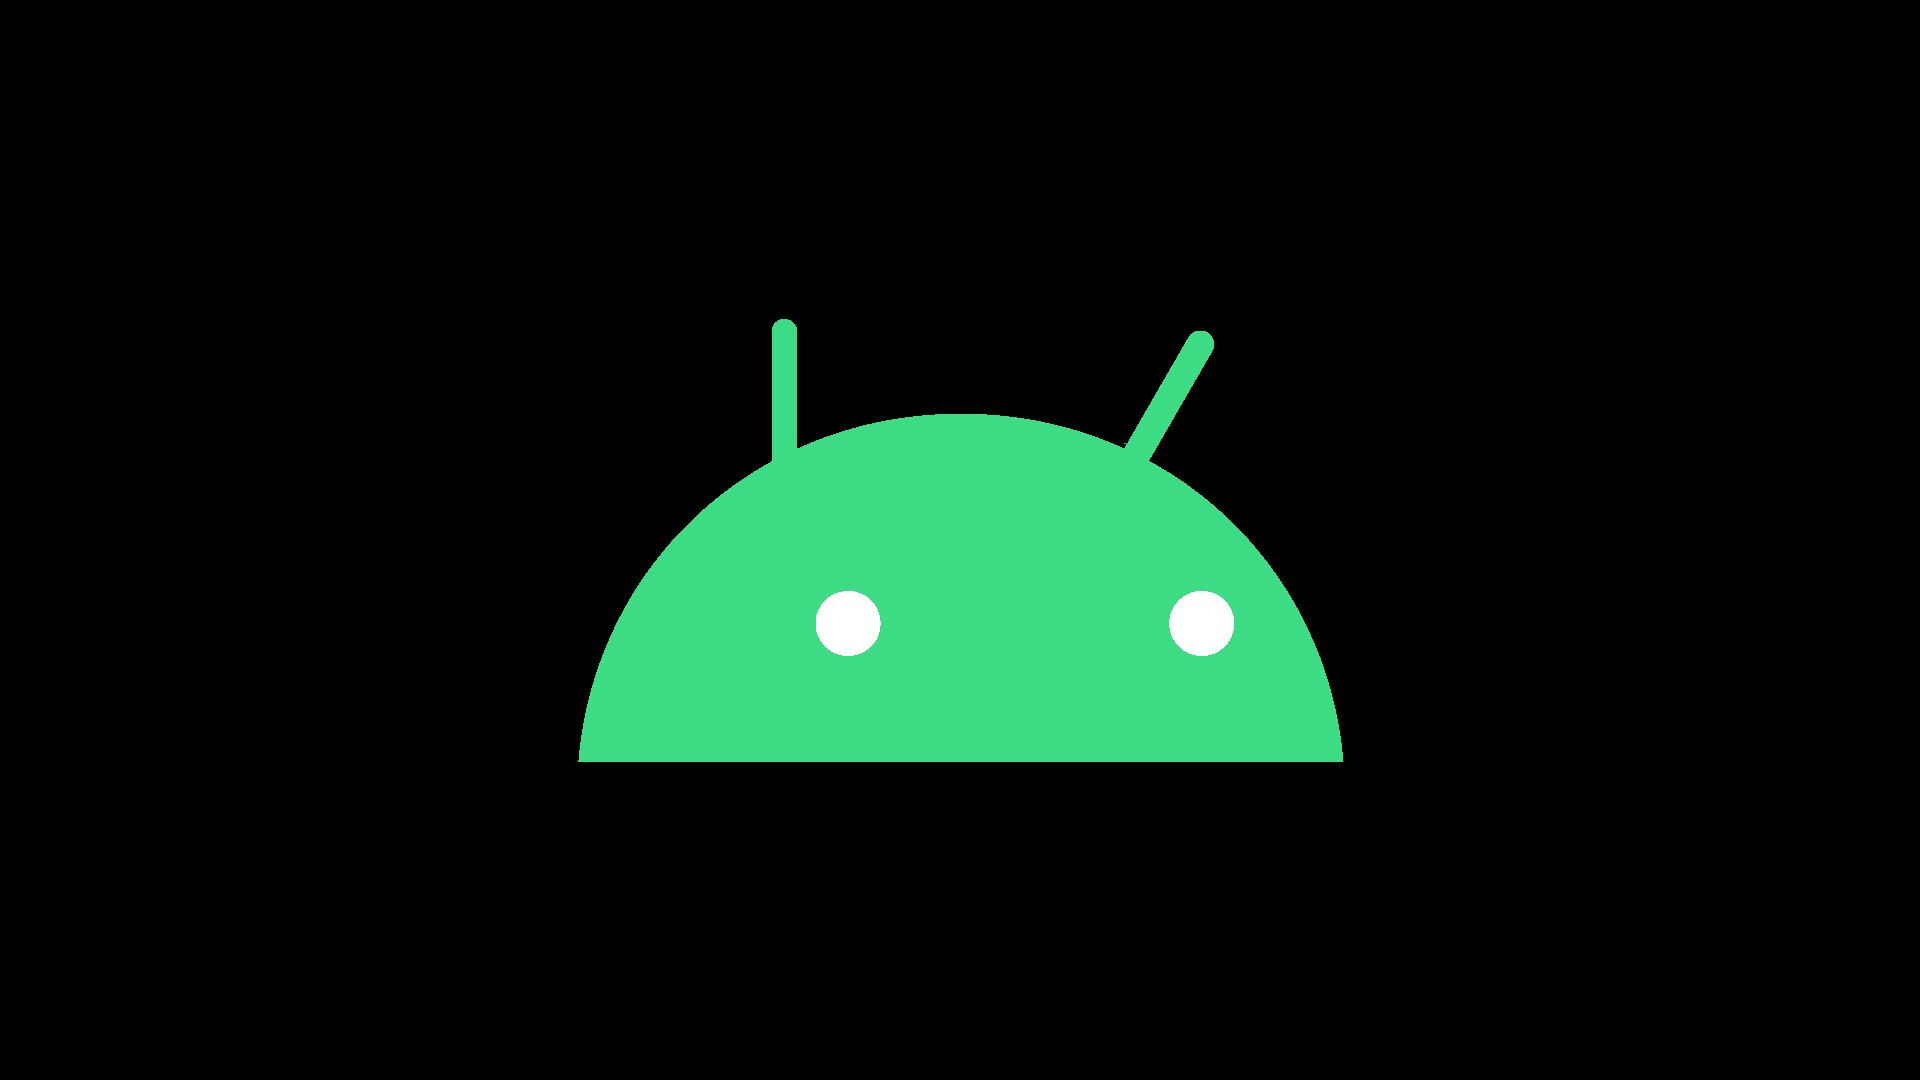 android 10 dark mode logo